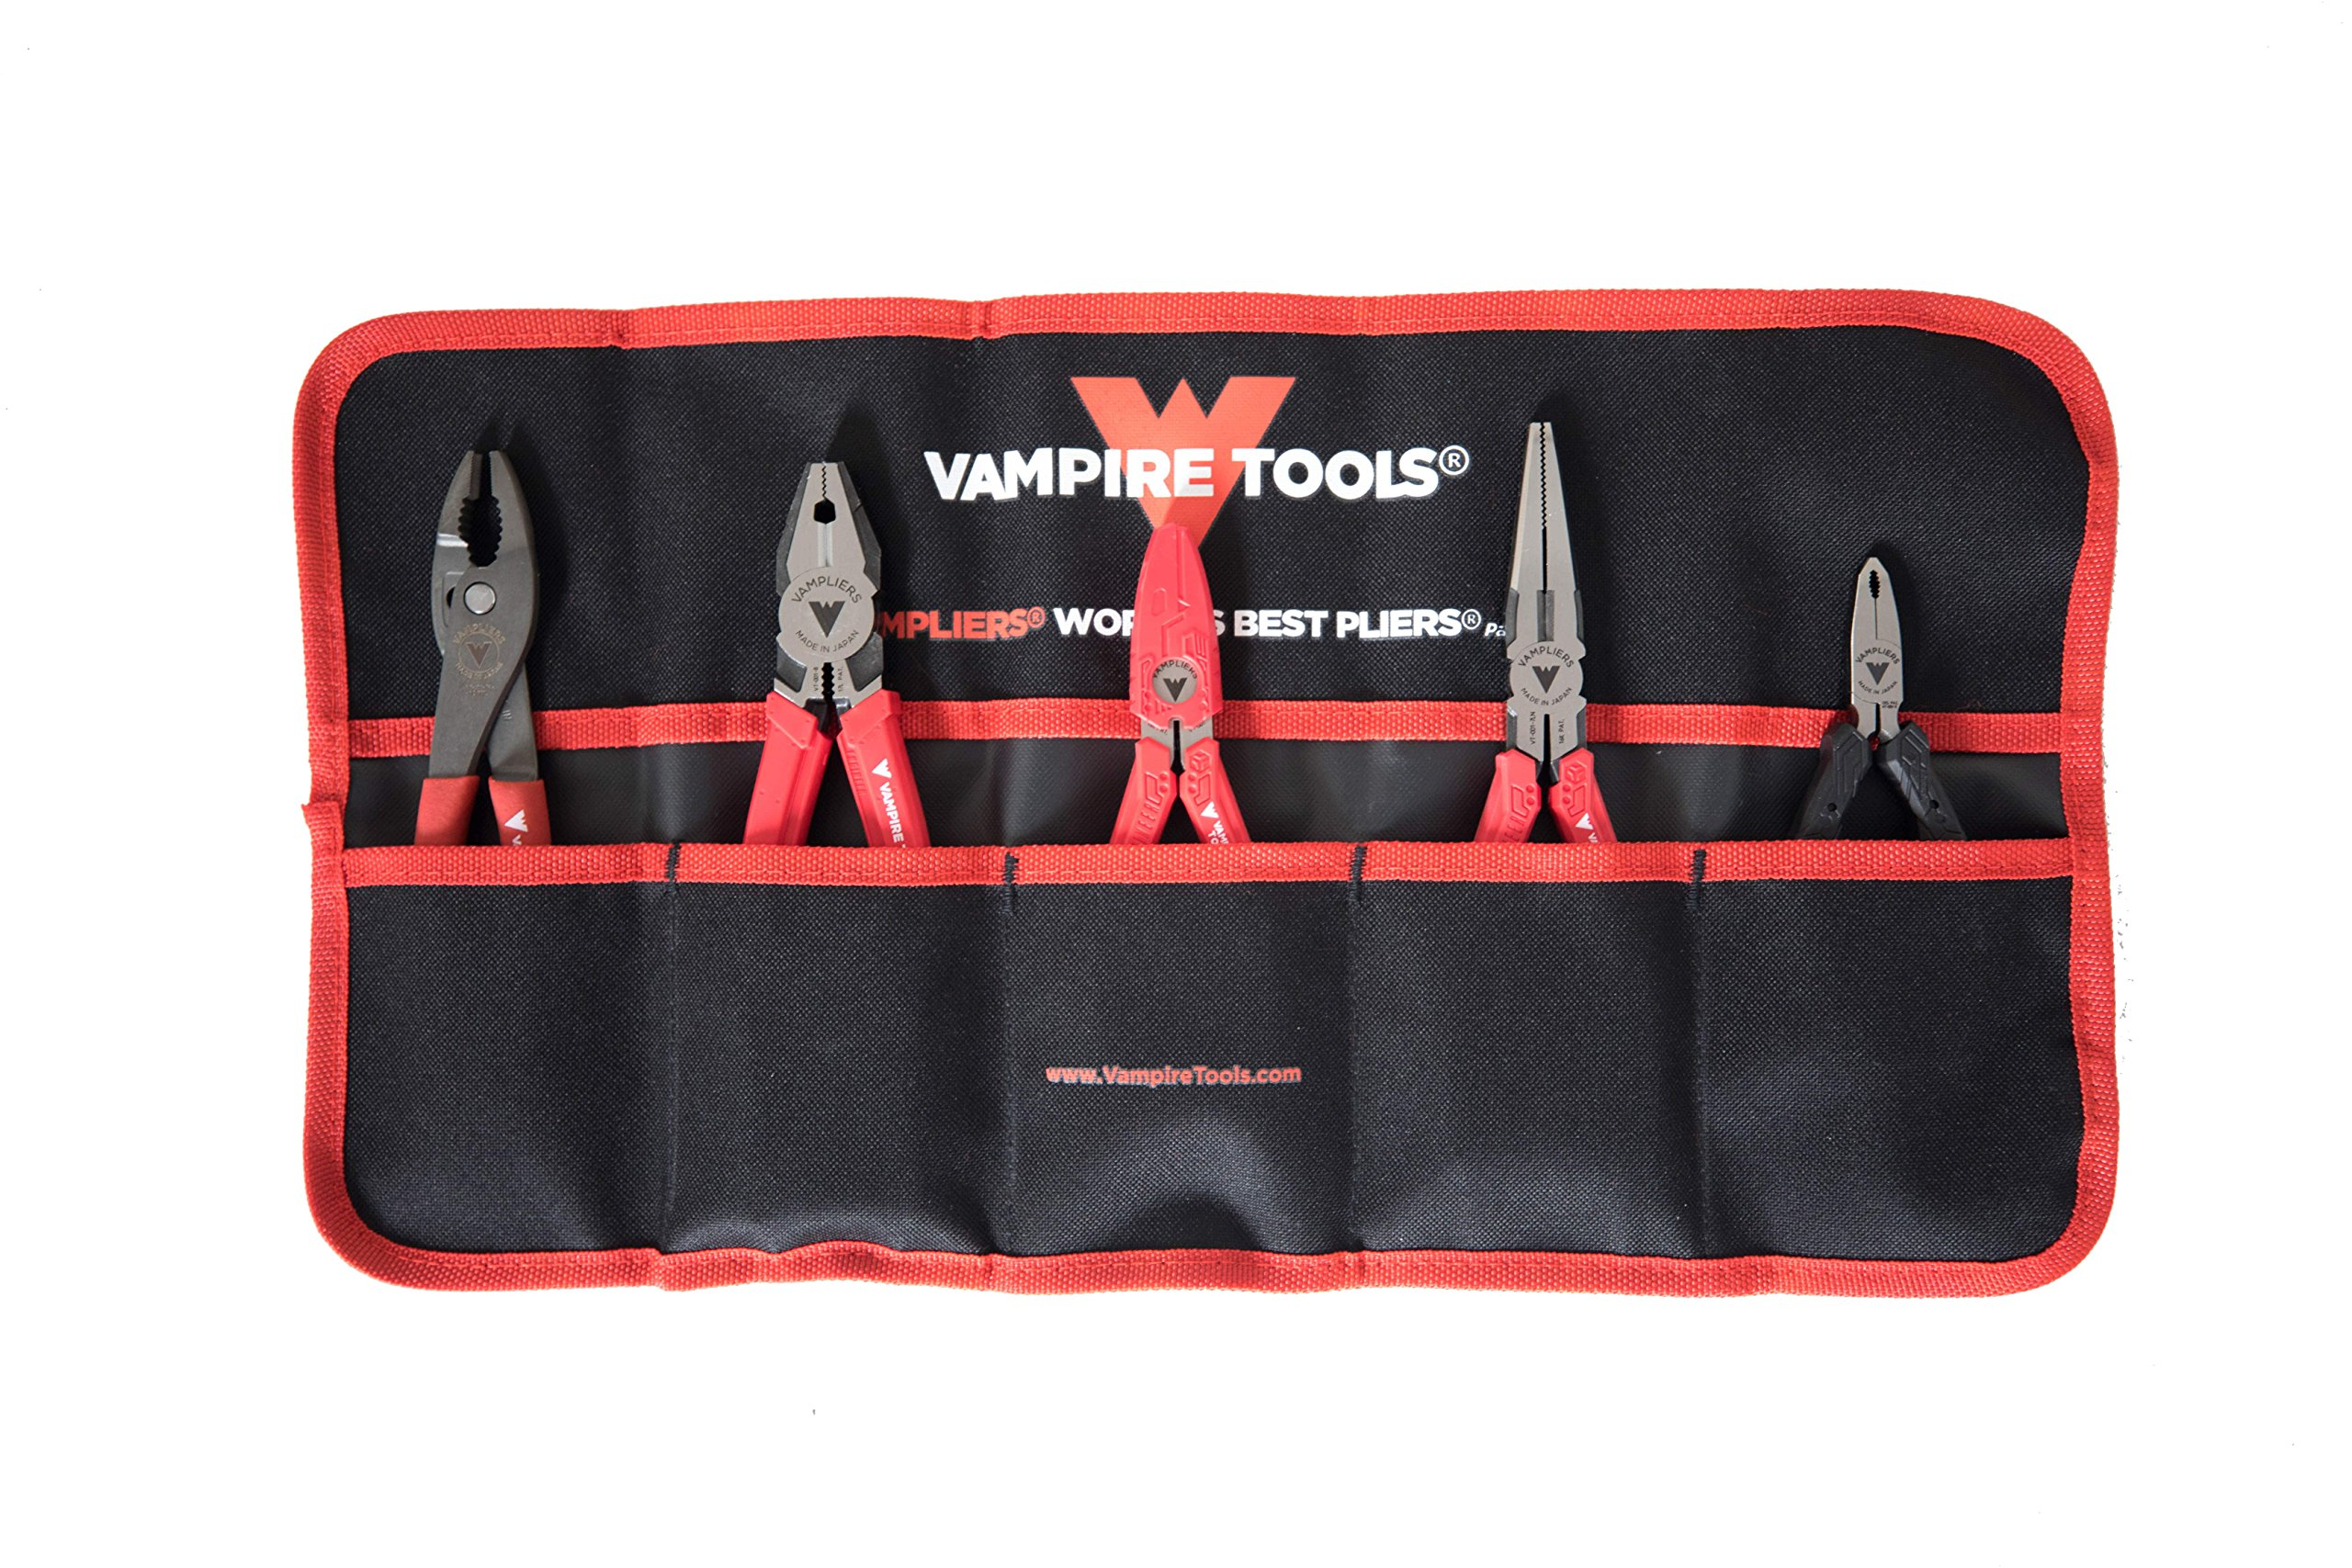 VamPLIERS World's Best Pliers VT-001-S5BP Rusted/Damage/Security Screw Extraction Pliers Best Holiday Christmas Gift Ideal for Corporate/Friends and Family Gifts that last beyond Christmas season! by Vampliers